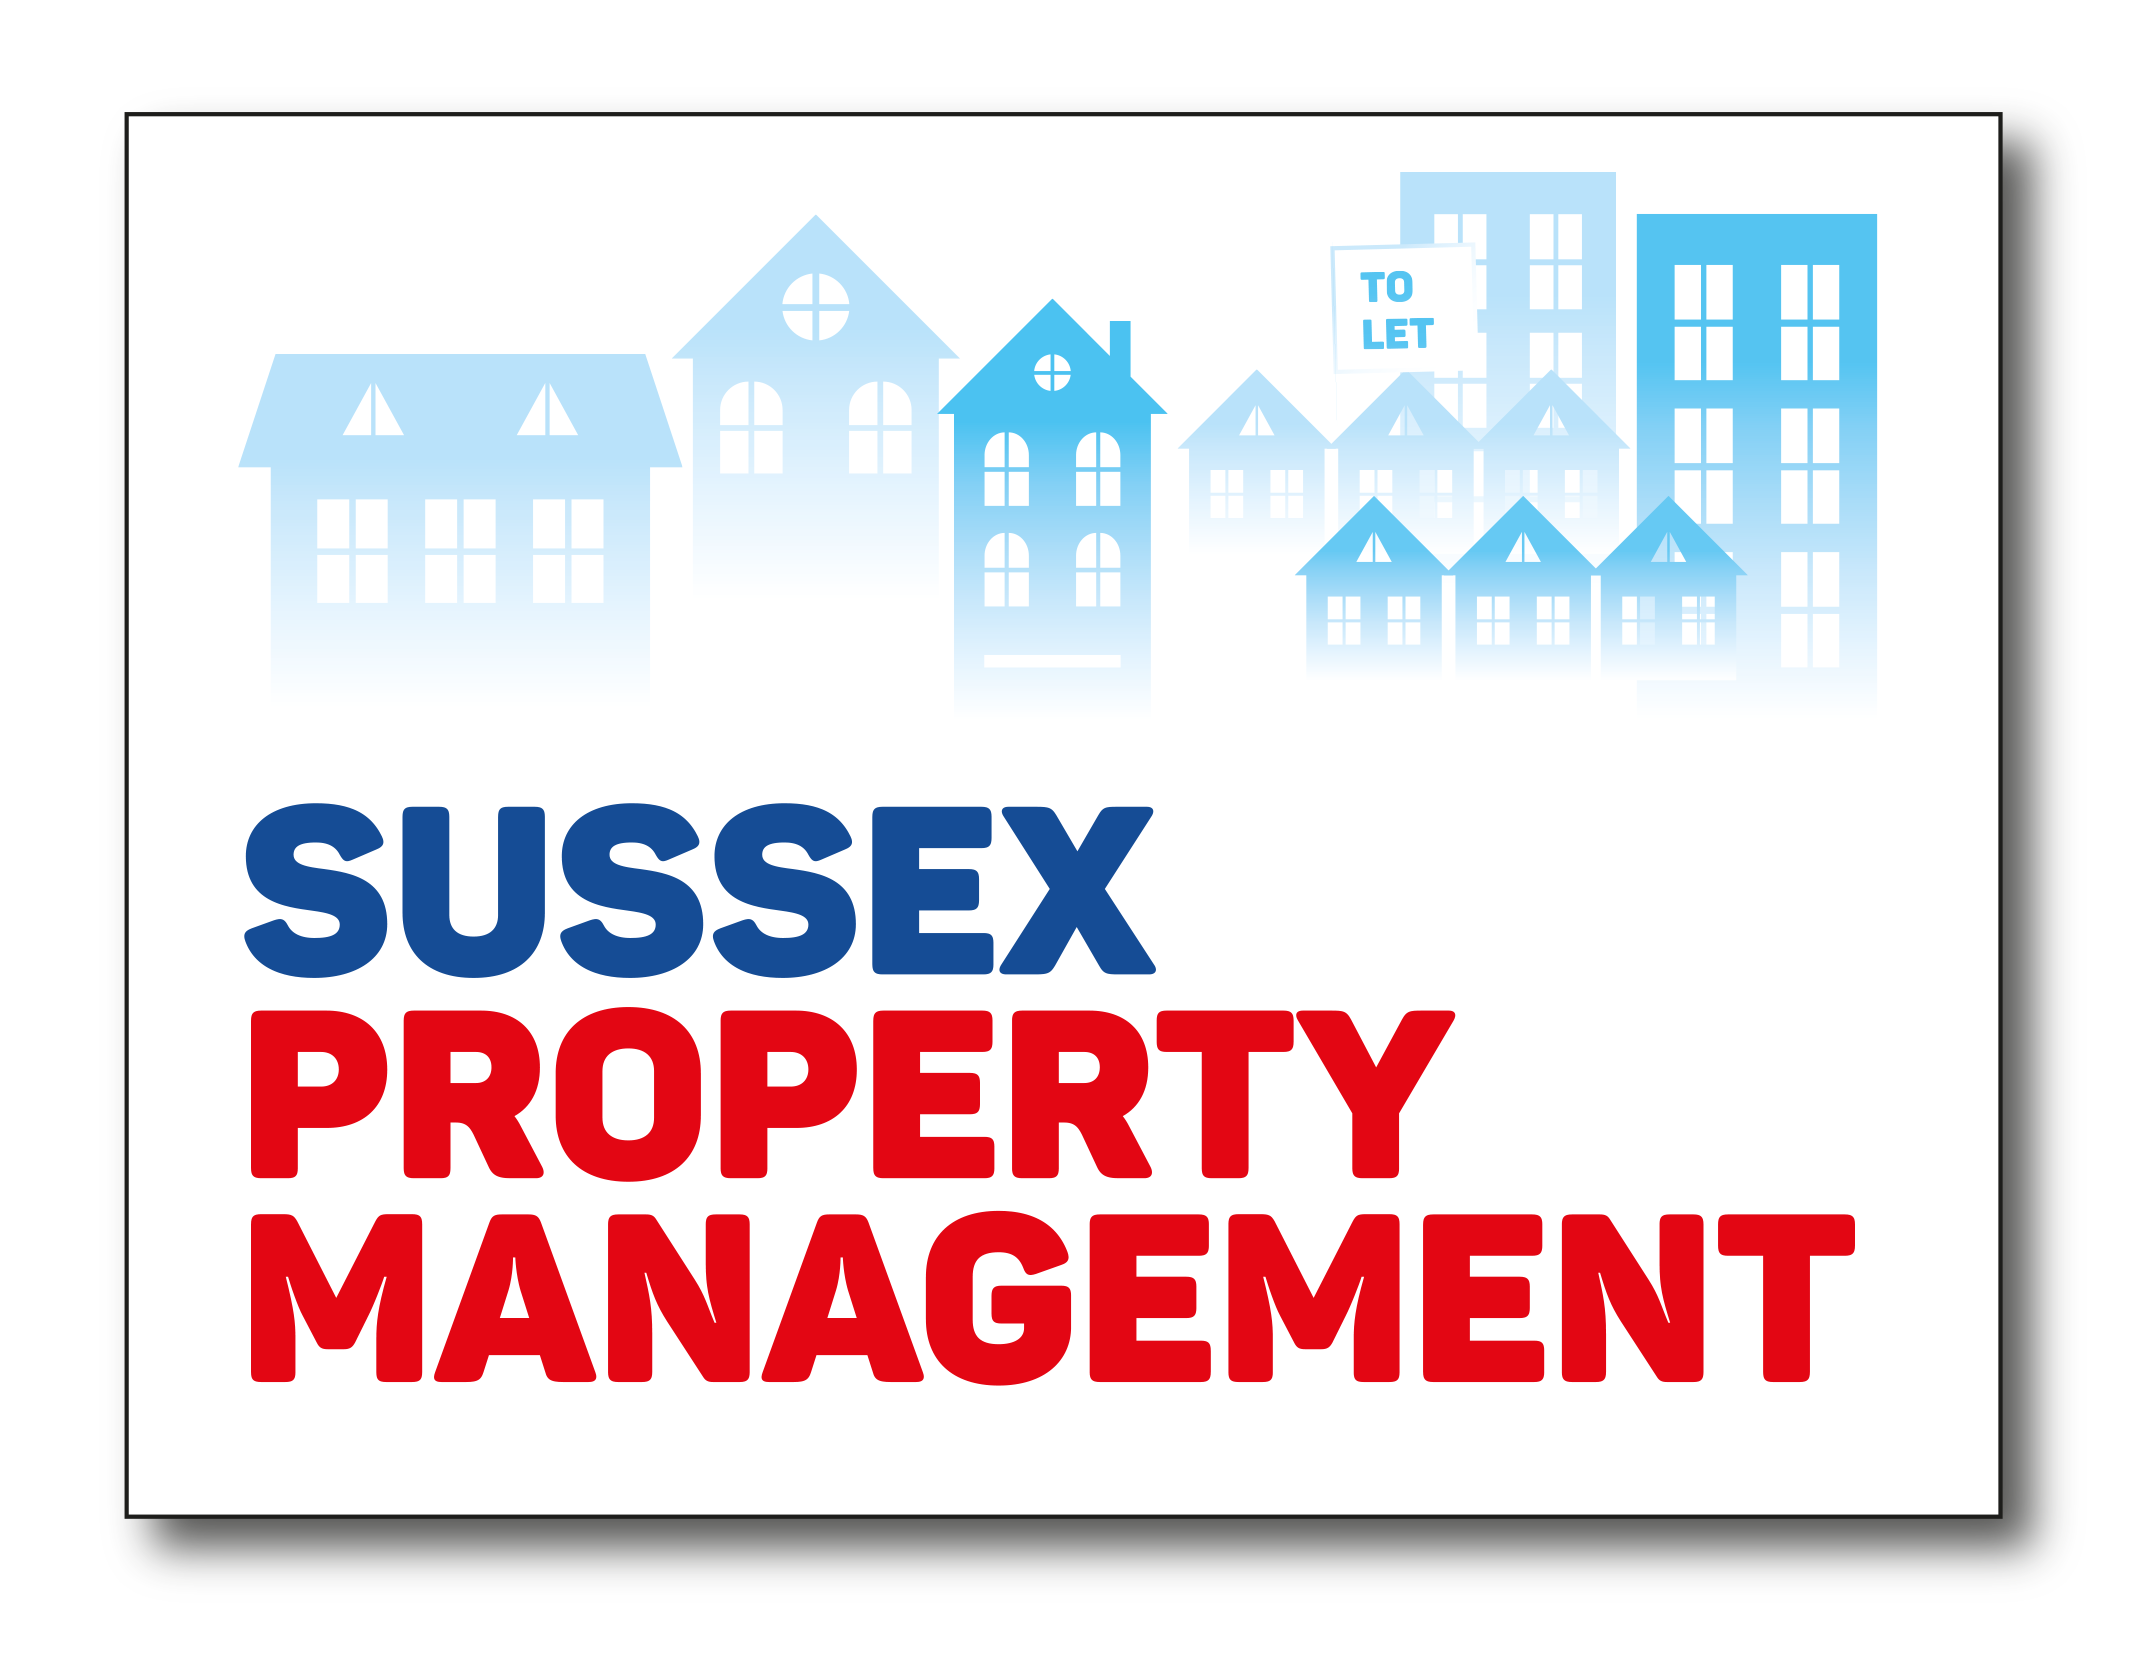 Sussex-Property-Management-Ltd-LOGO.png